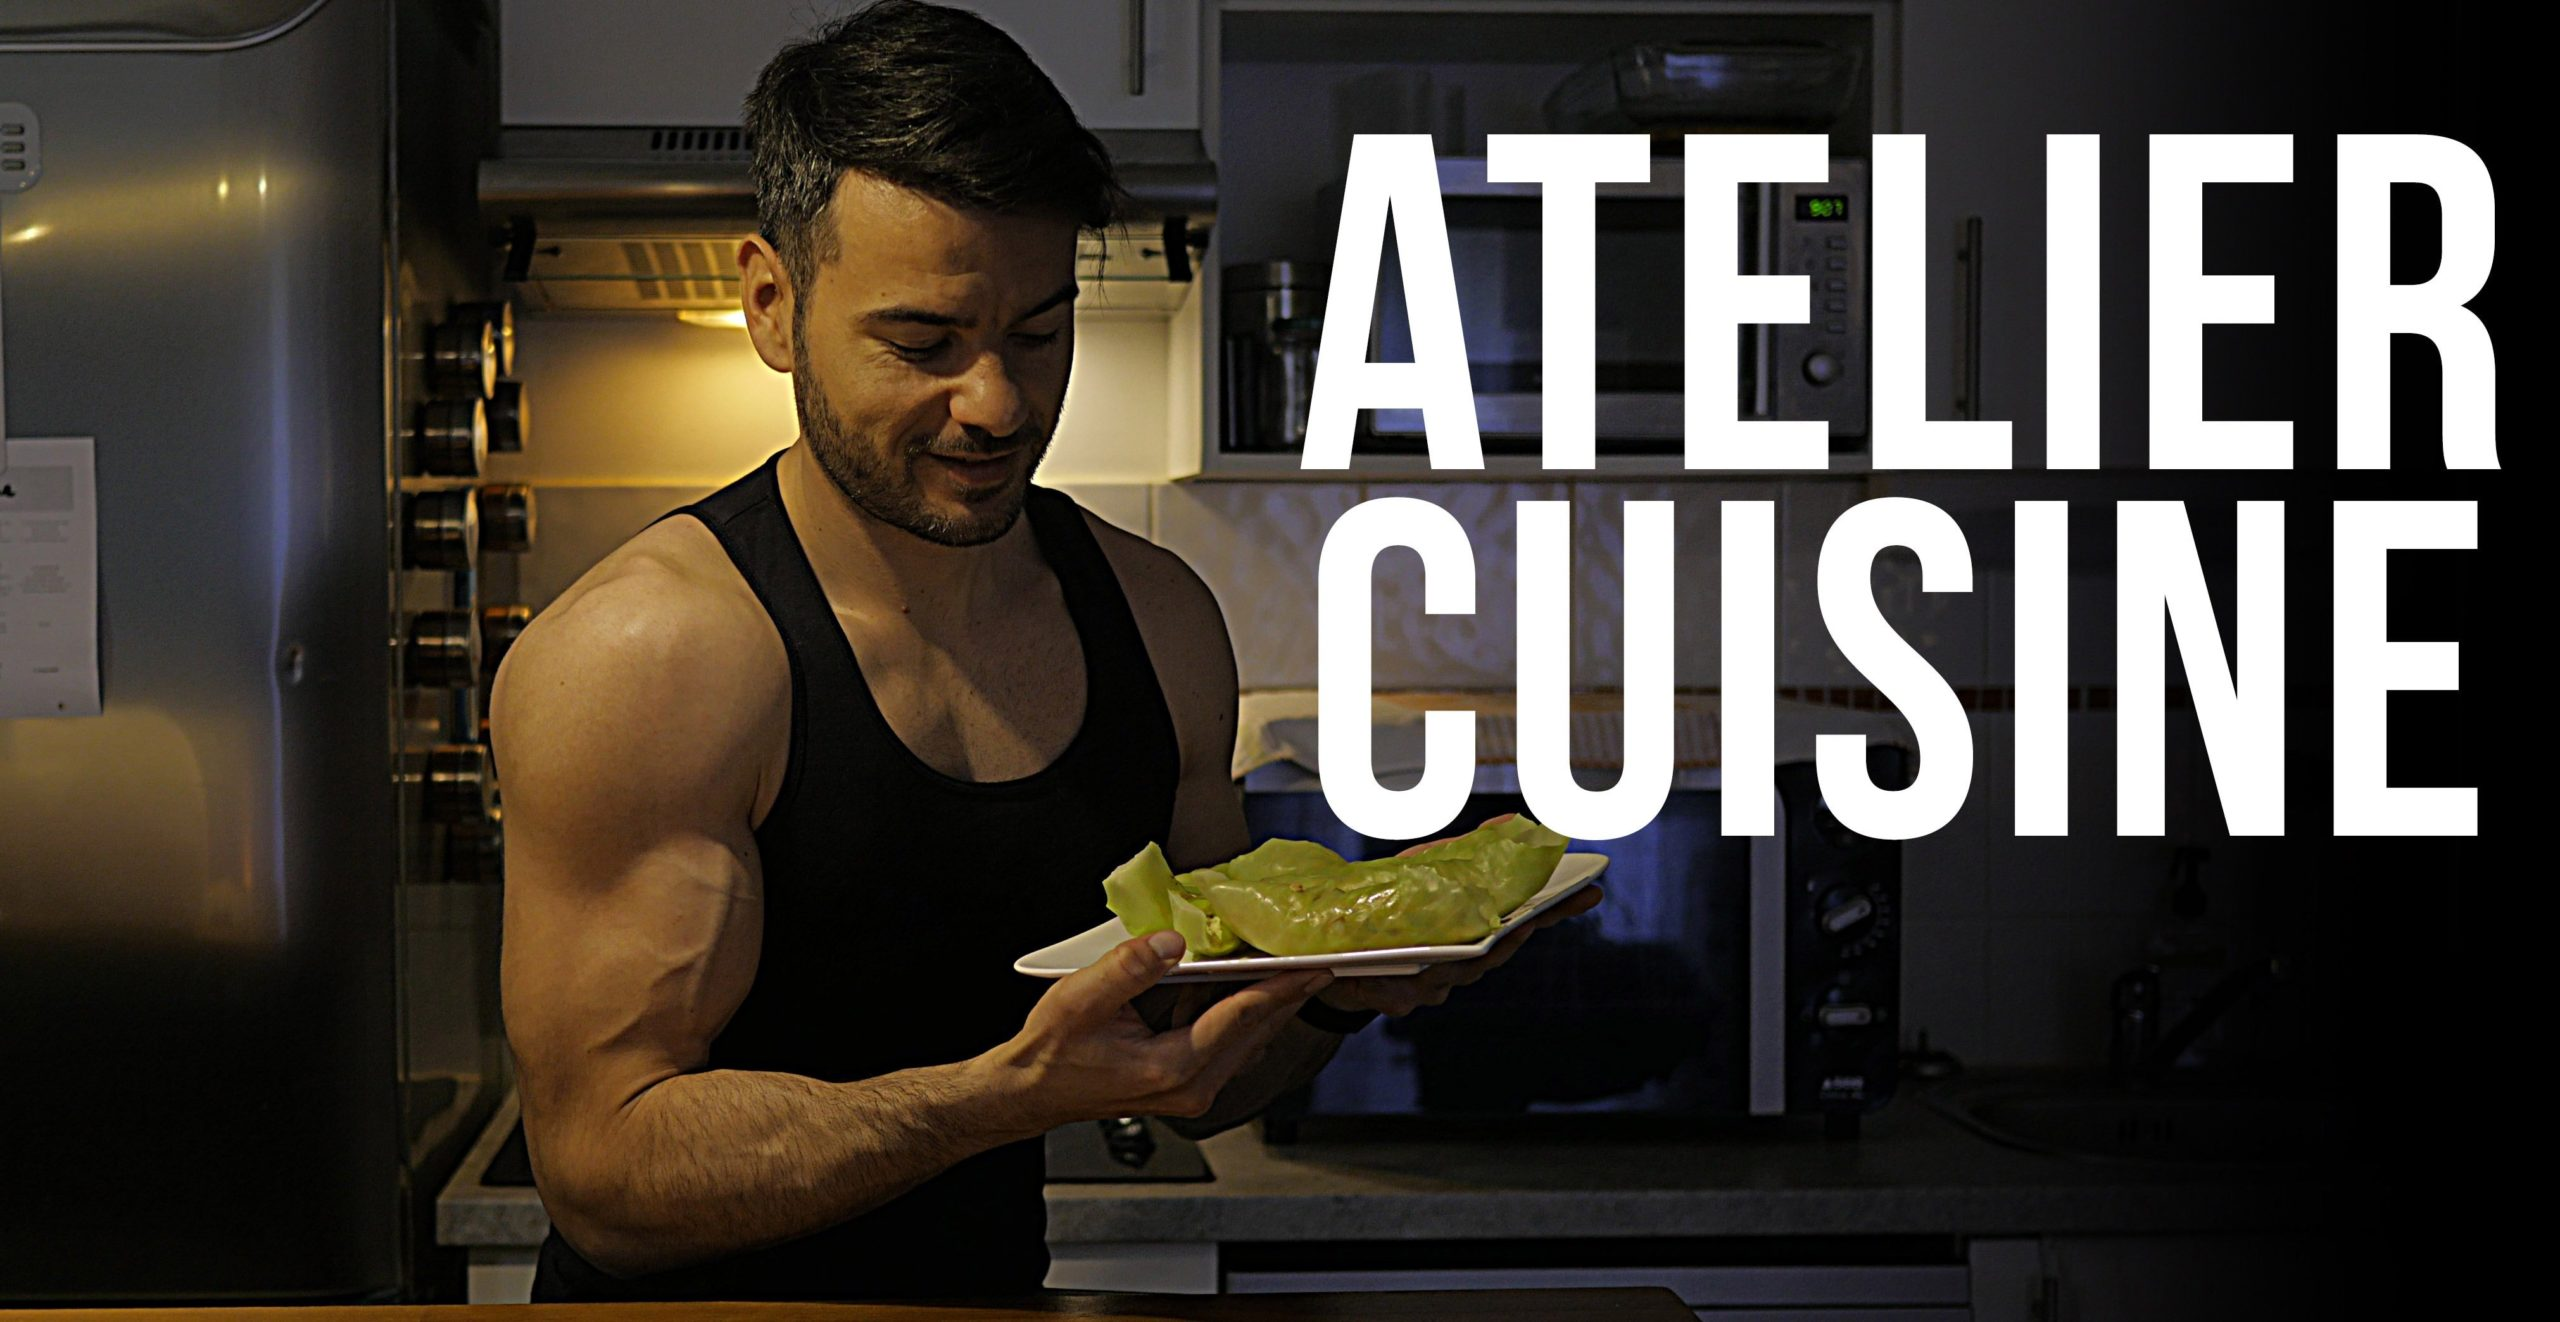 ?Atelier cuisine : les Shredded wraps sans glucides